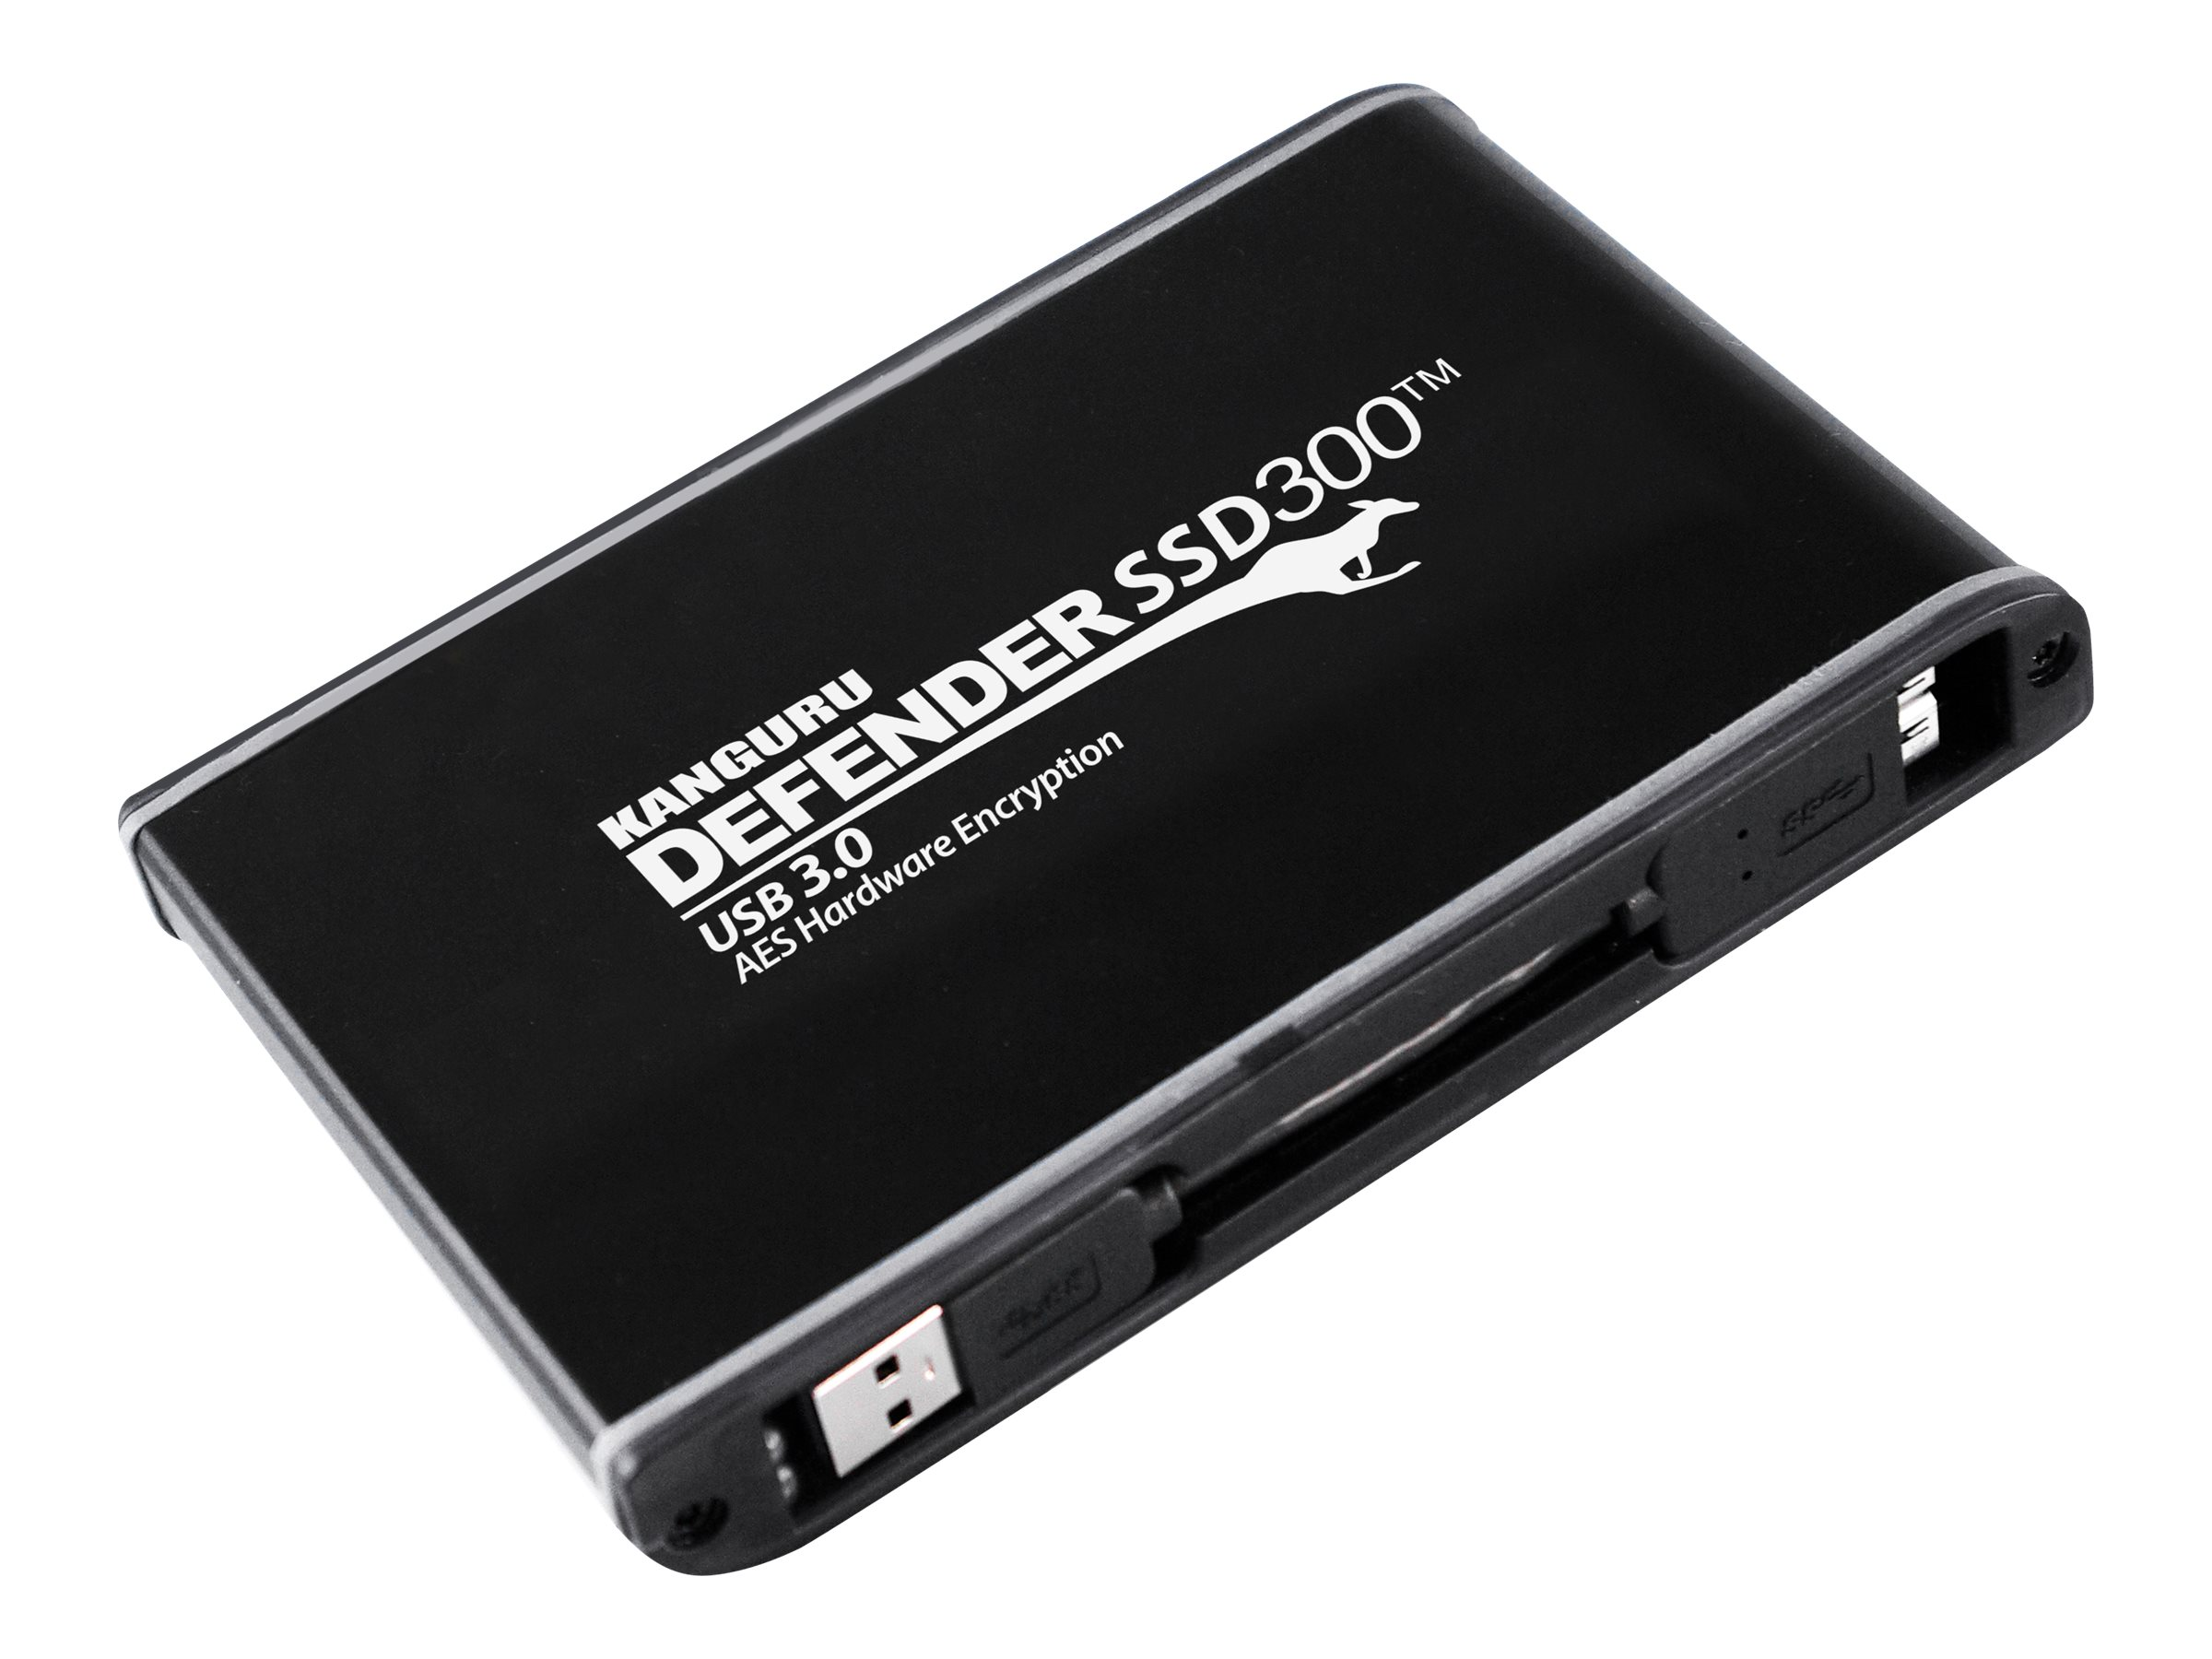 Kanguru Defender SSD300 FIPS Certified Hardware Encrypted - solid state drive - 2 TB - USB 3.0